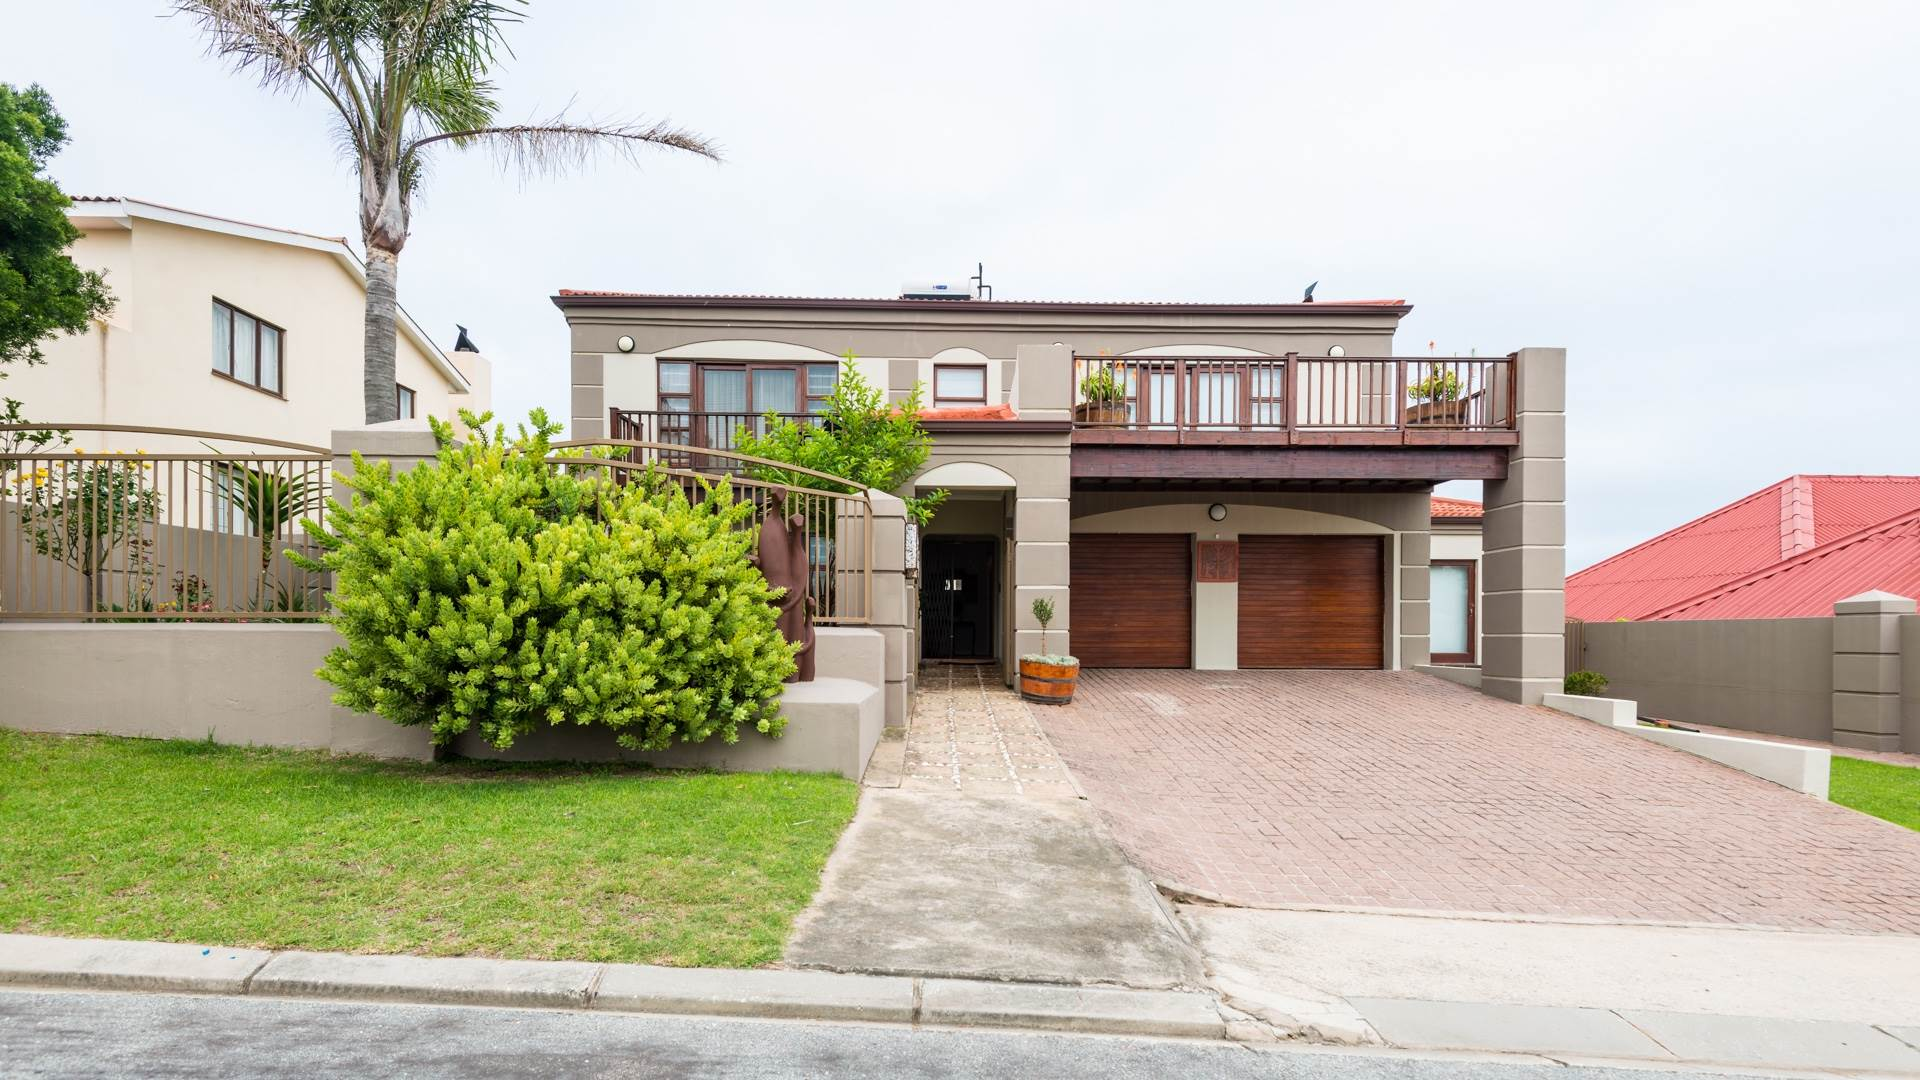 4 BedroomHouse For Sale In Herolds Bay